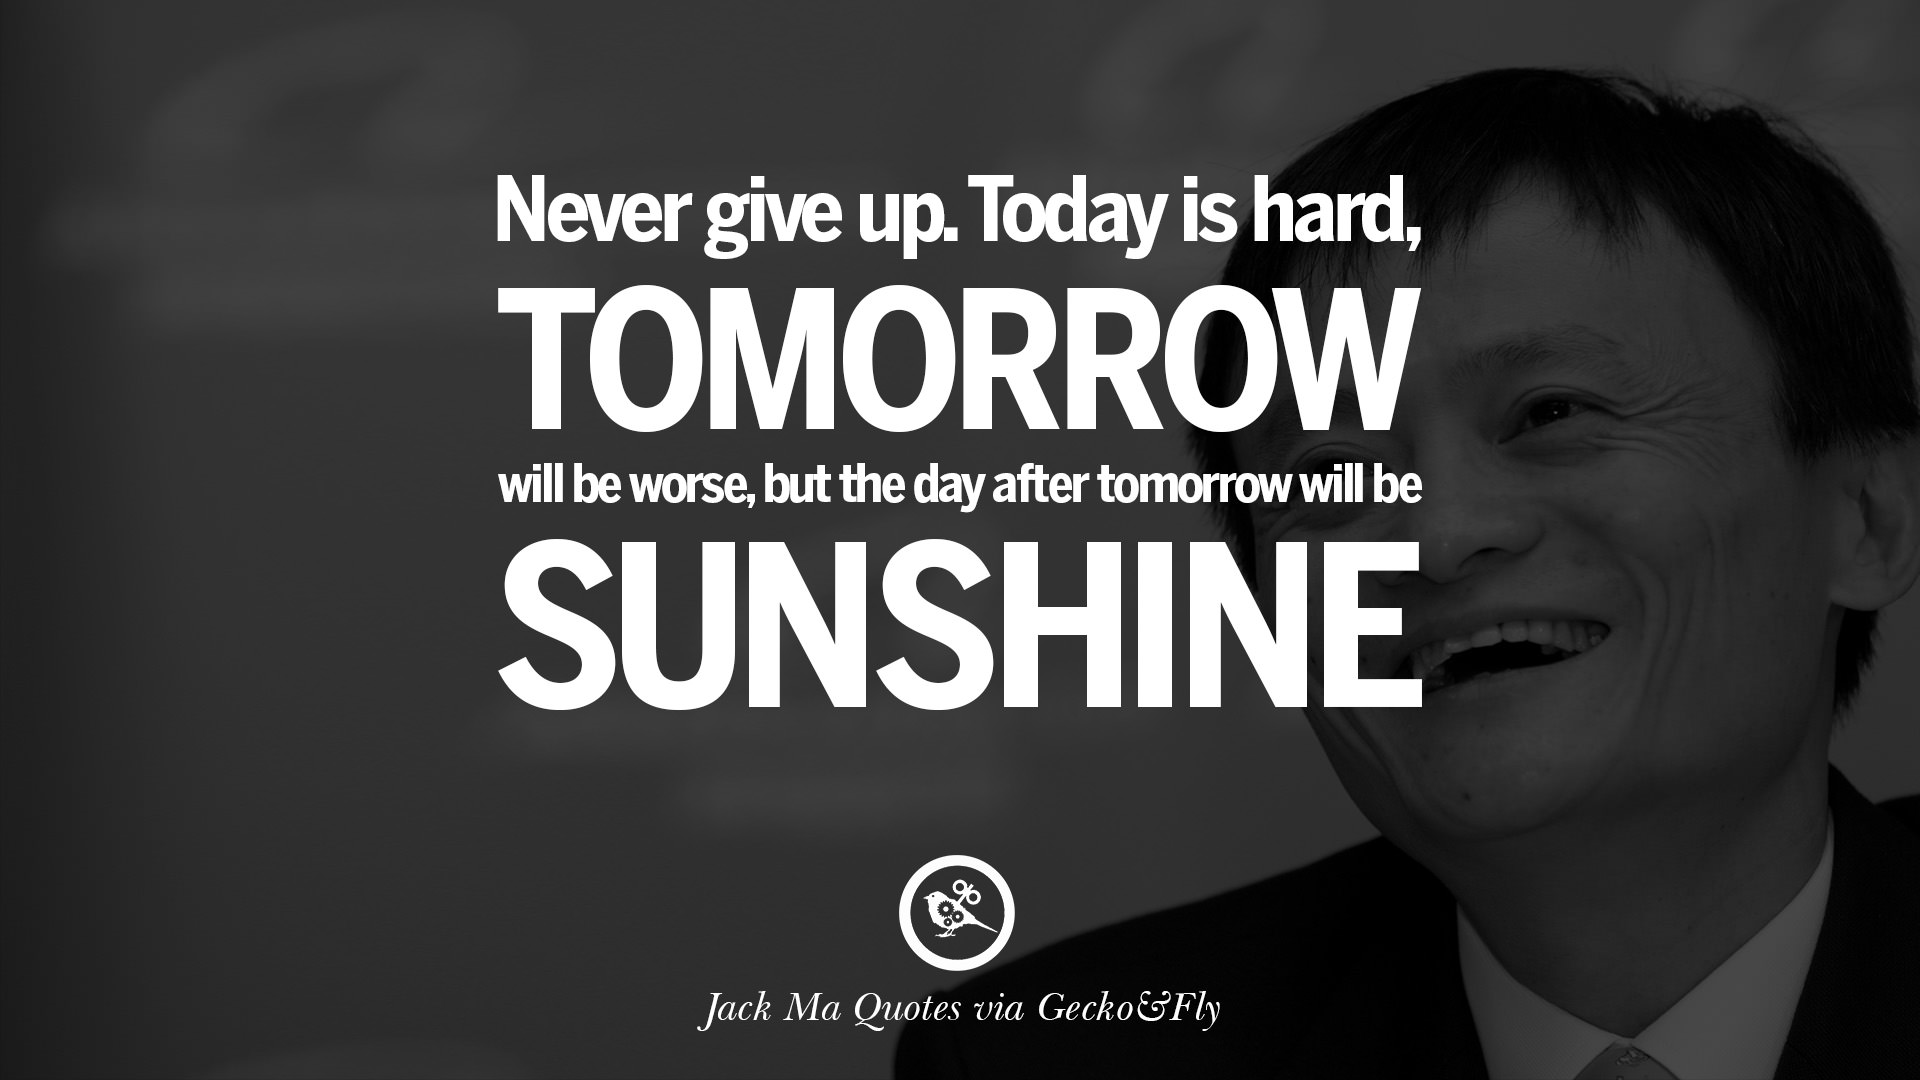 Wise Quotes Jack Ma